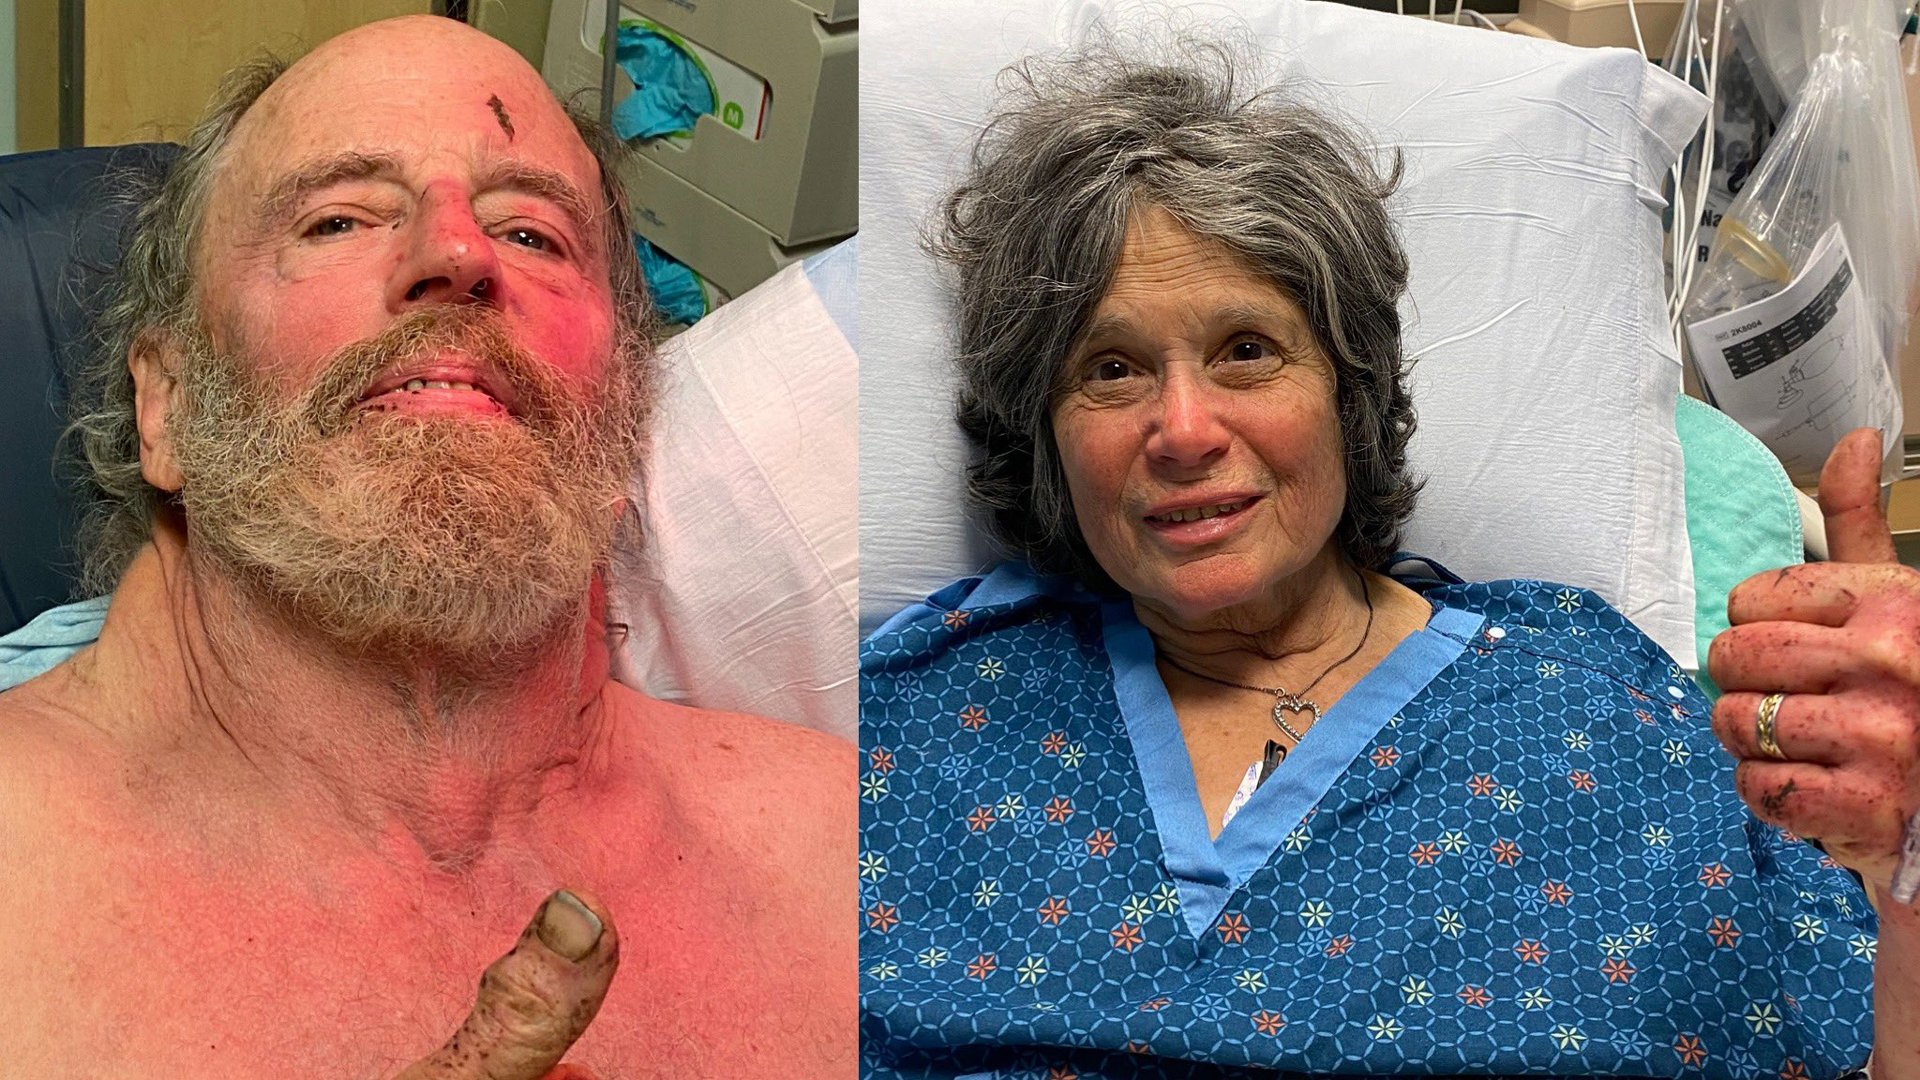 Ian Irwin, 72, left, and Carol Kiparsky, 77, of Palo Alto, pictured after their rescue after a week lost in a forest in Marin County on Feb. 22, 2020. (Credit: Marin County Sheriff's Office)